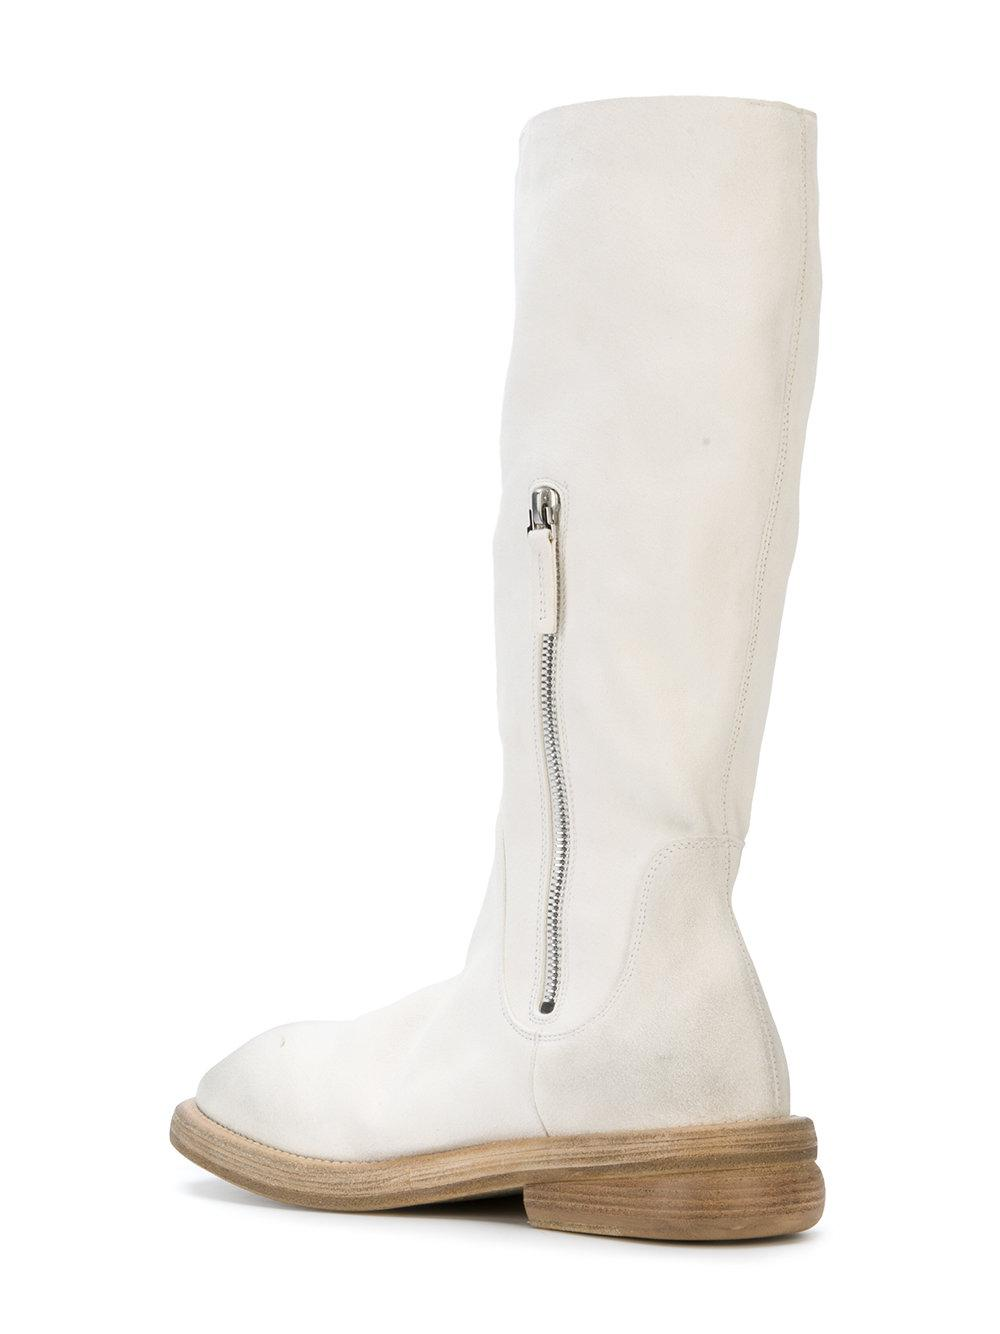 Marsèll Leather Wooden Sole Boots in White